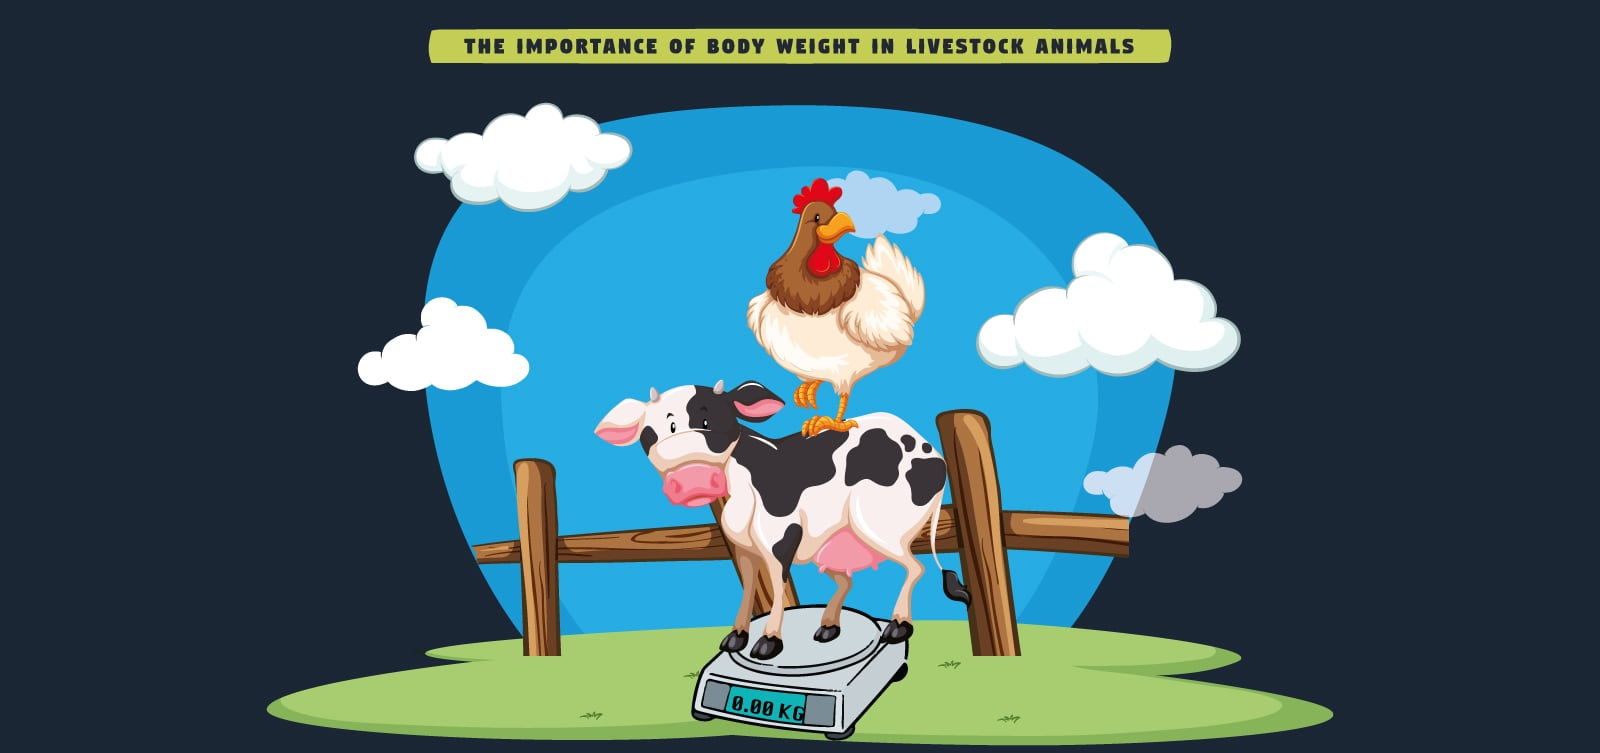 the-importance-of-body-weight-in-livestock-animals